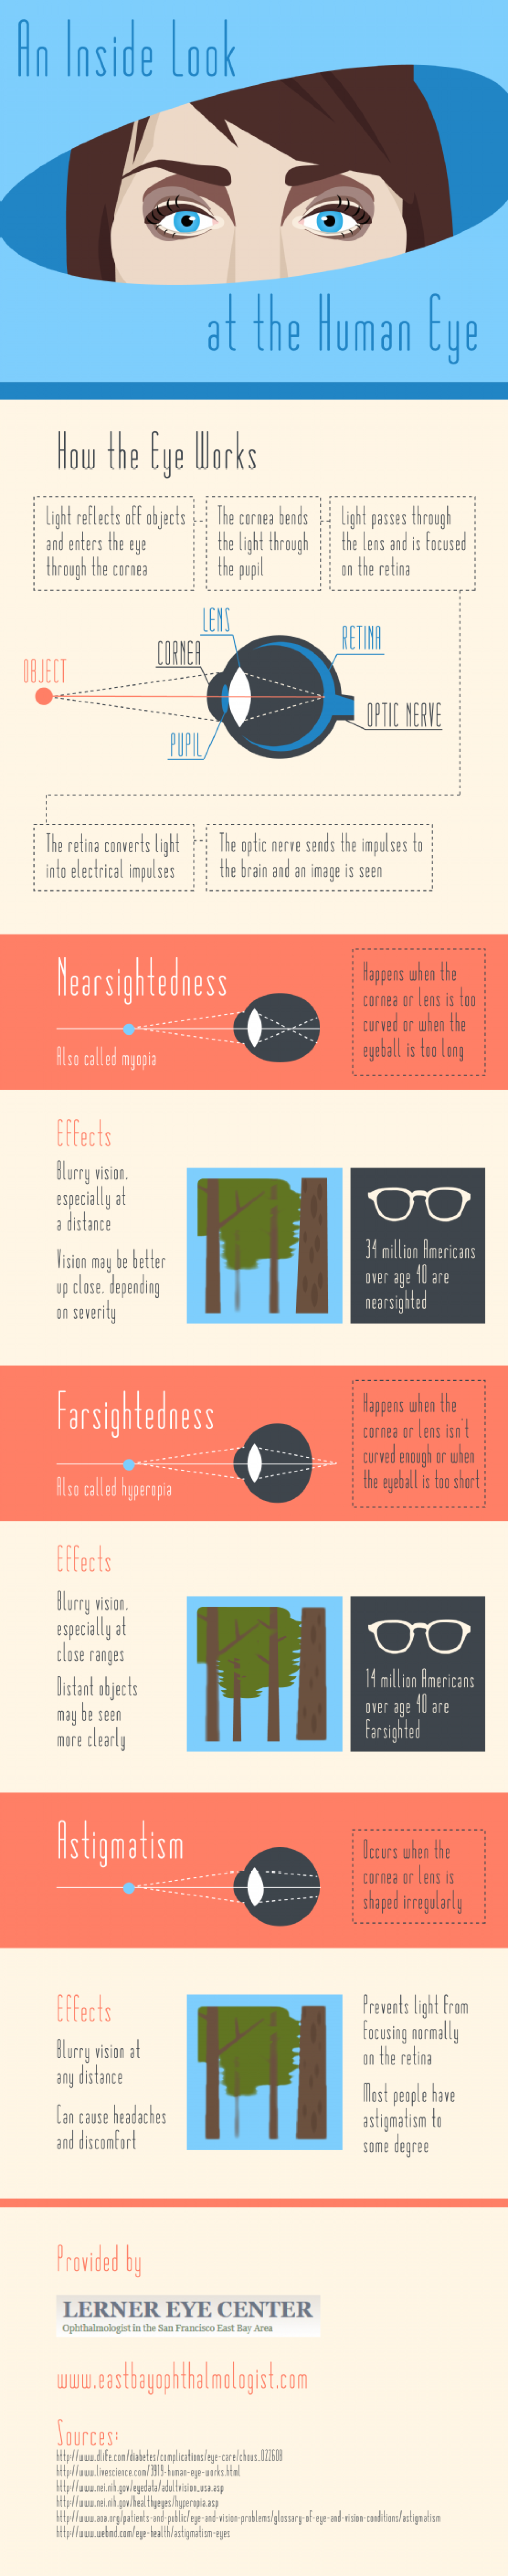 An Inside Look at the Human Eye Infographic